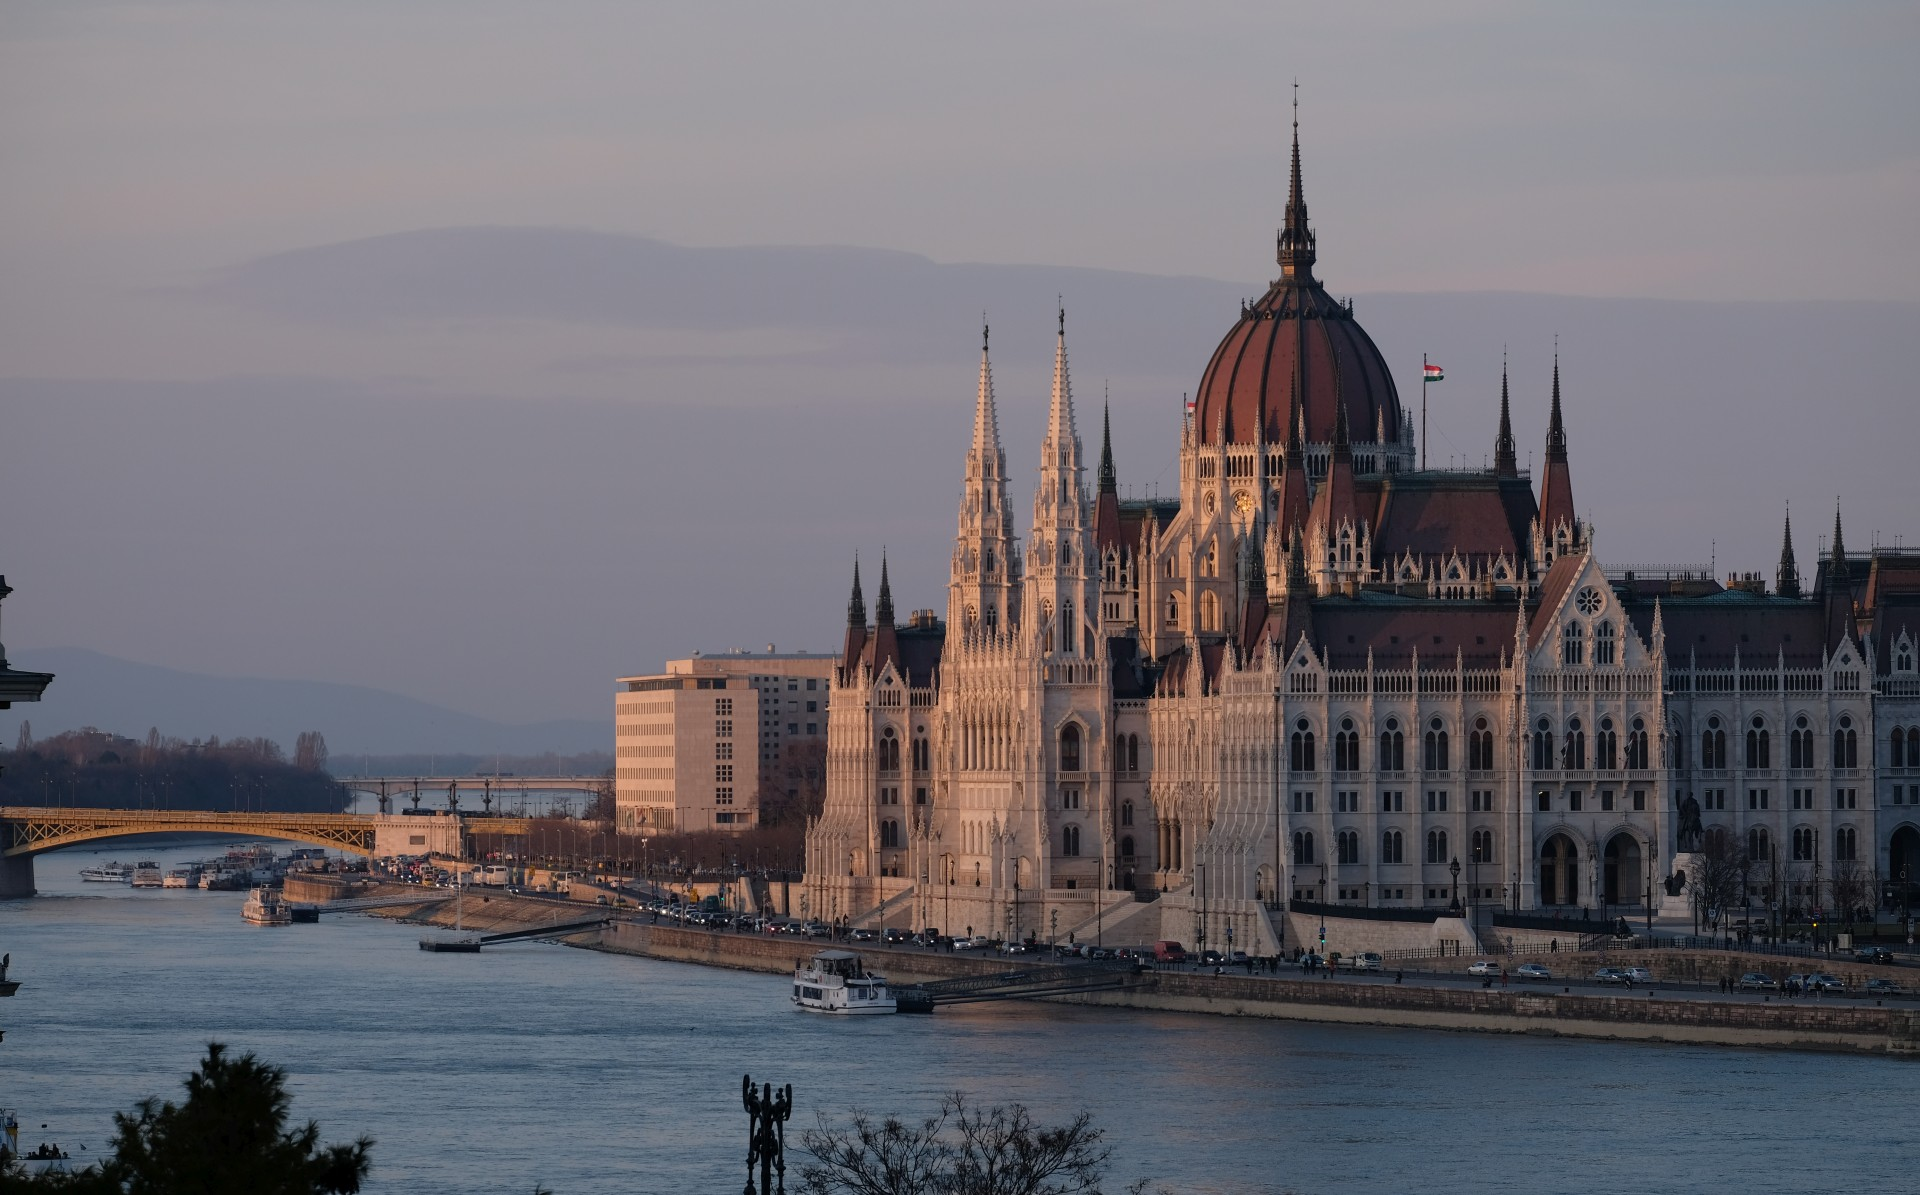 Das Parlament in Budapest am Donauufer